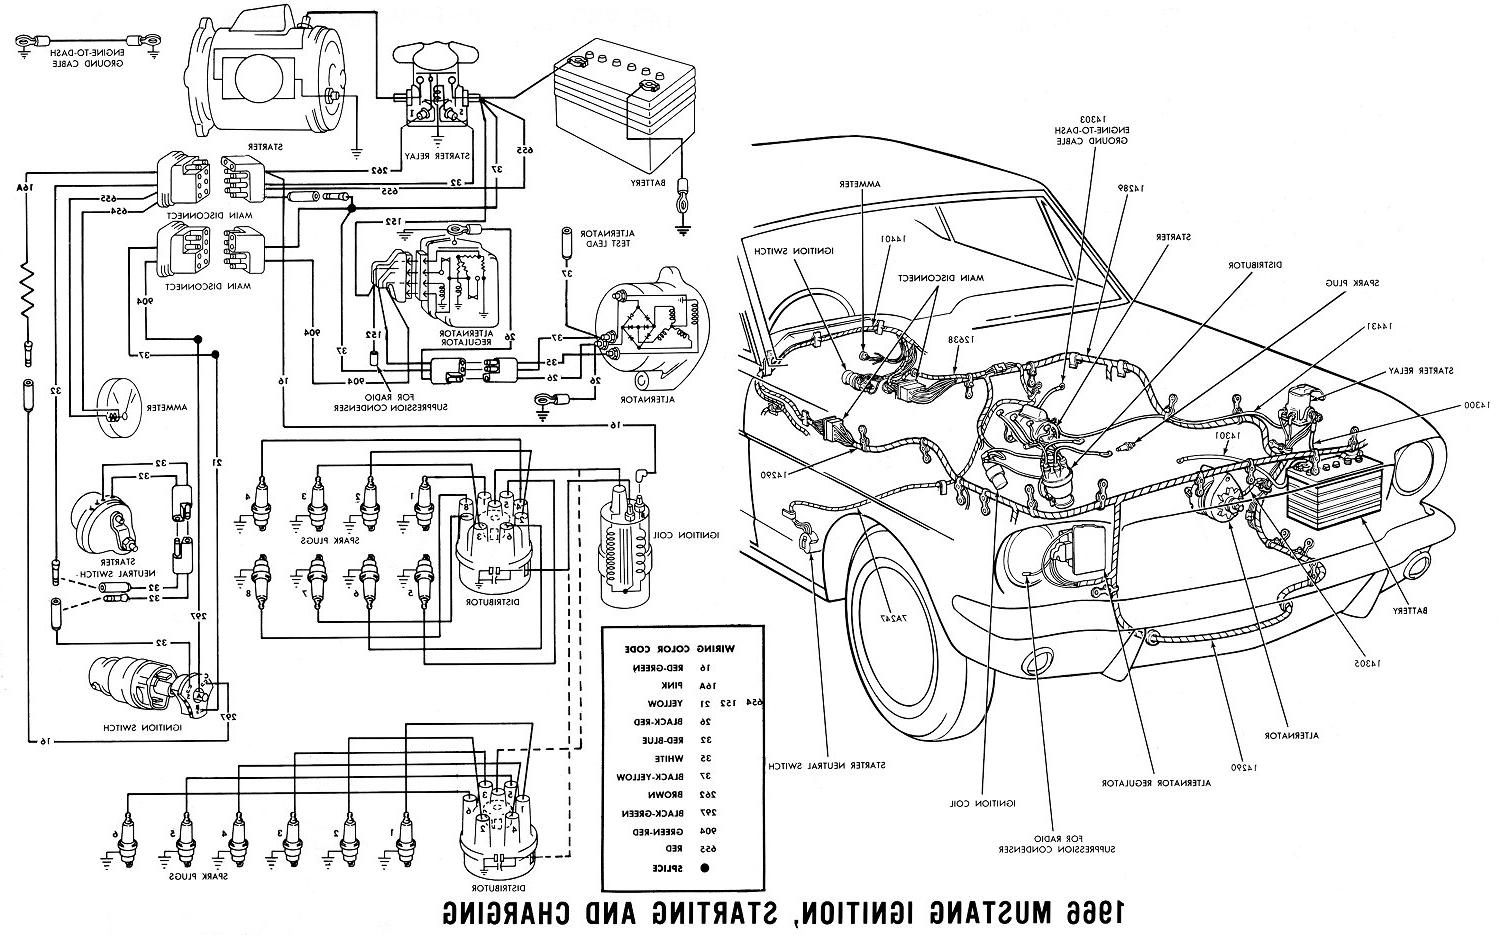 Free Diagram 1968 Coronet Wiring Diagram Full Version Hd Quality Wiring Diagram Ilwiring Bandb Veneto It